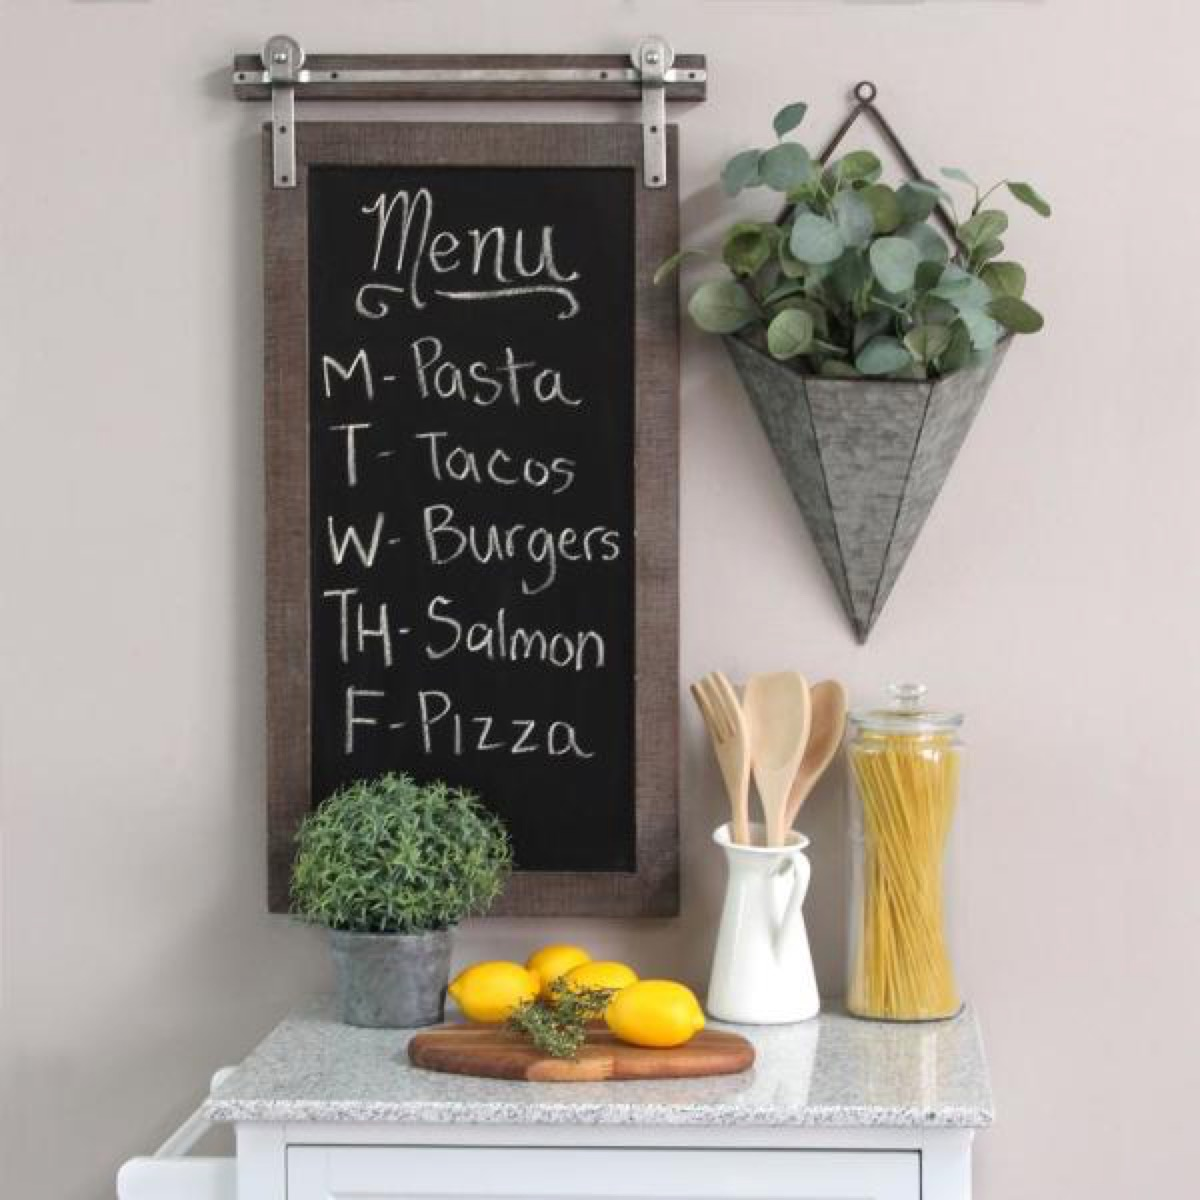 chalkboard sign above white table with plant next to it, rustic farmhouse decor